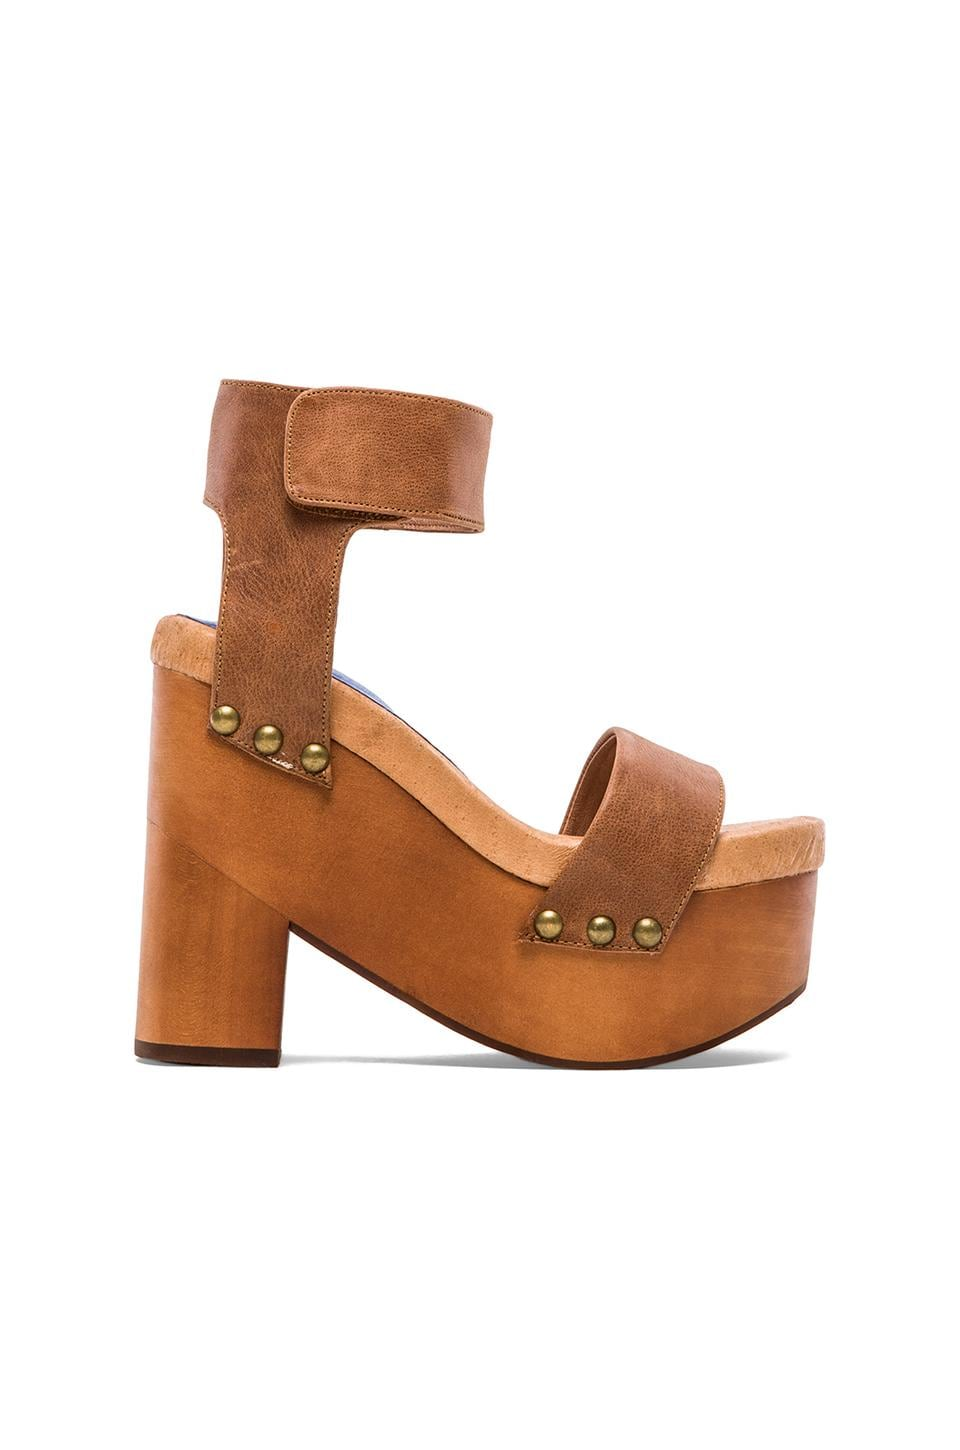 Jeffrey Campbell Mccloud Heel in Tan